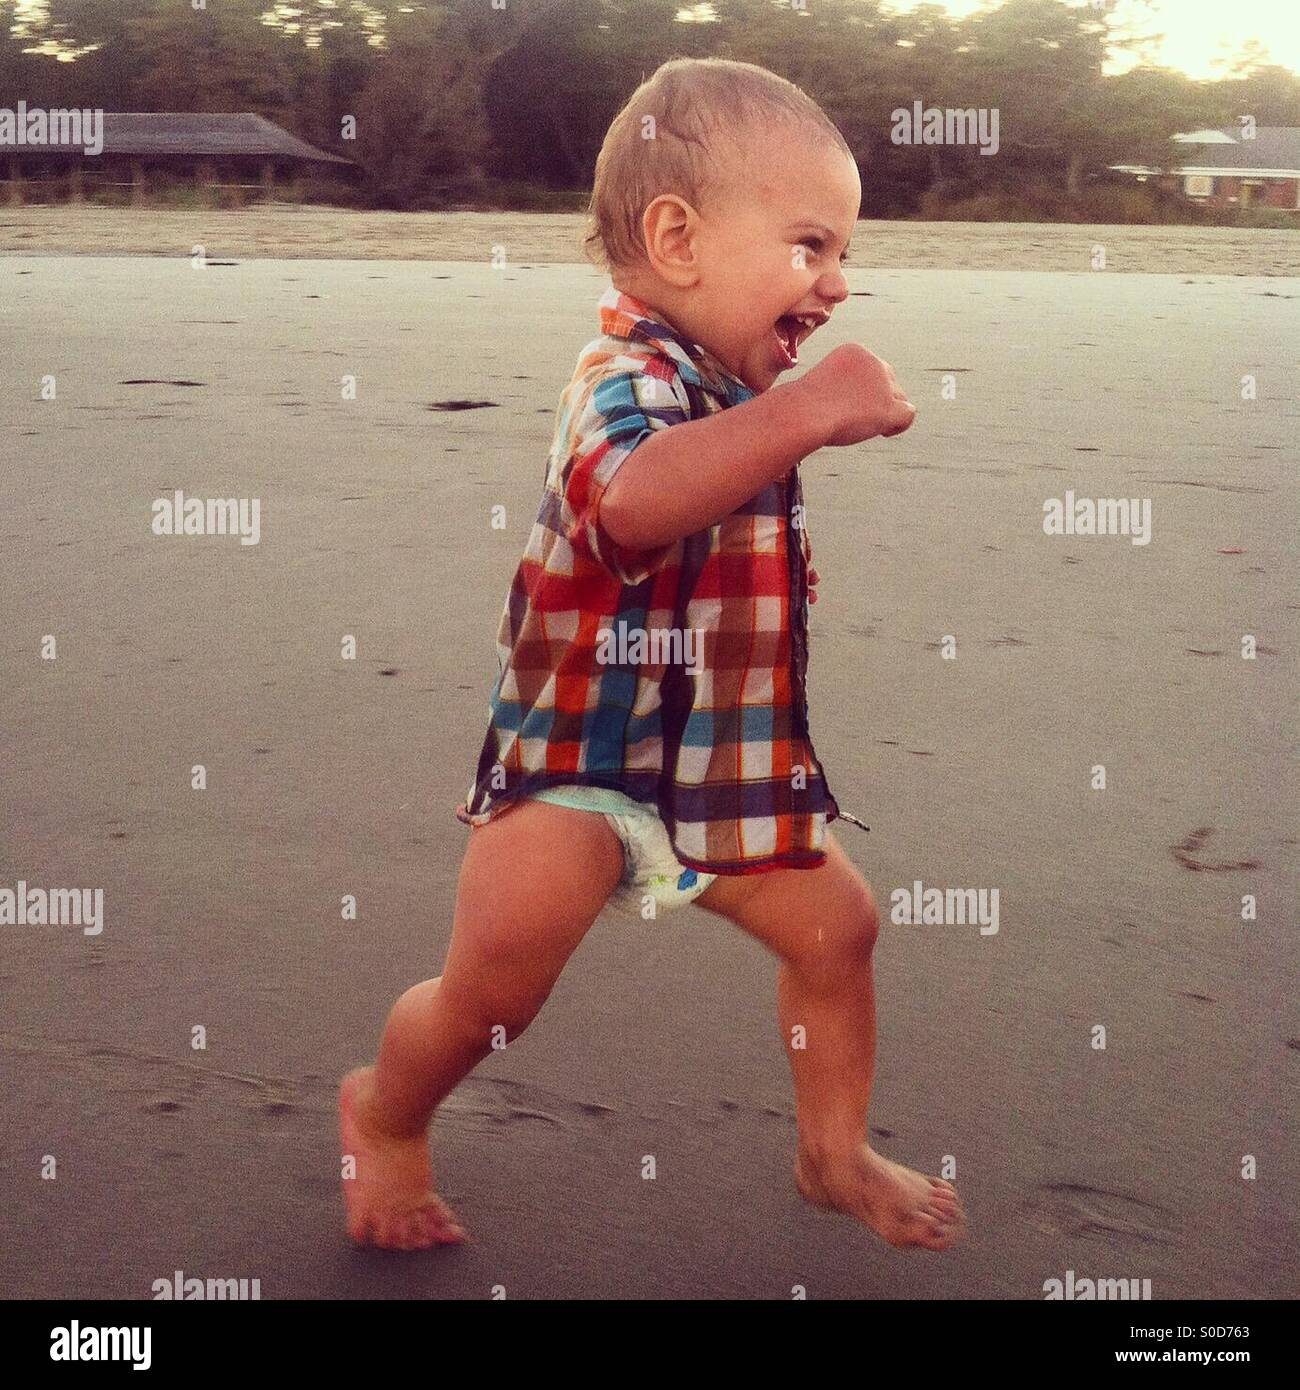 Toddler running on the beach - Stock Image